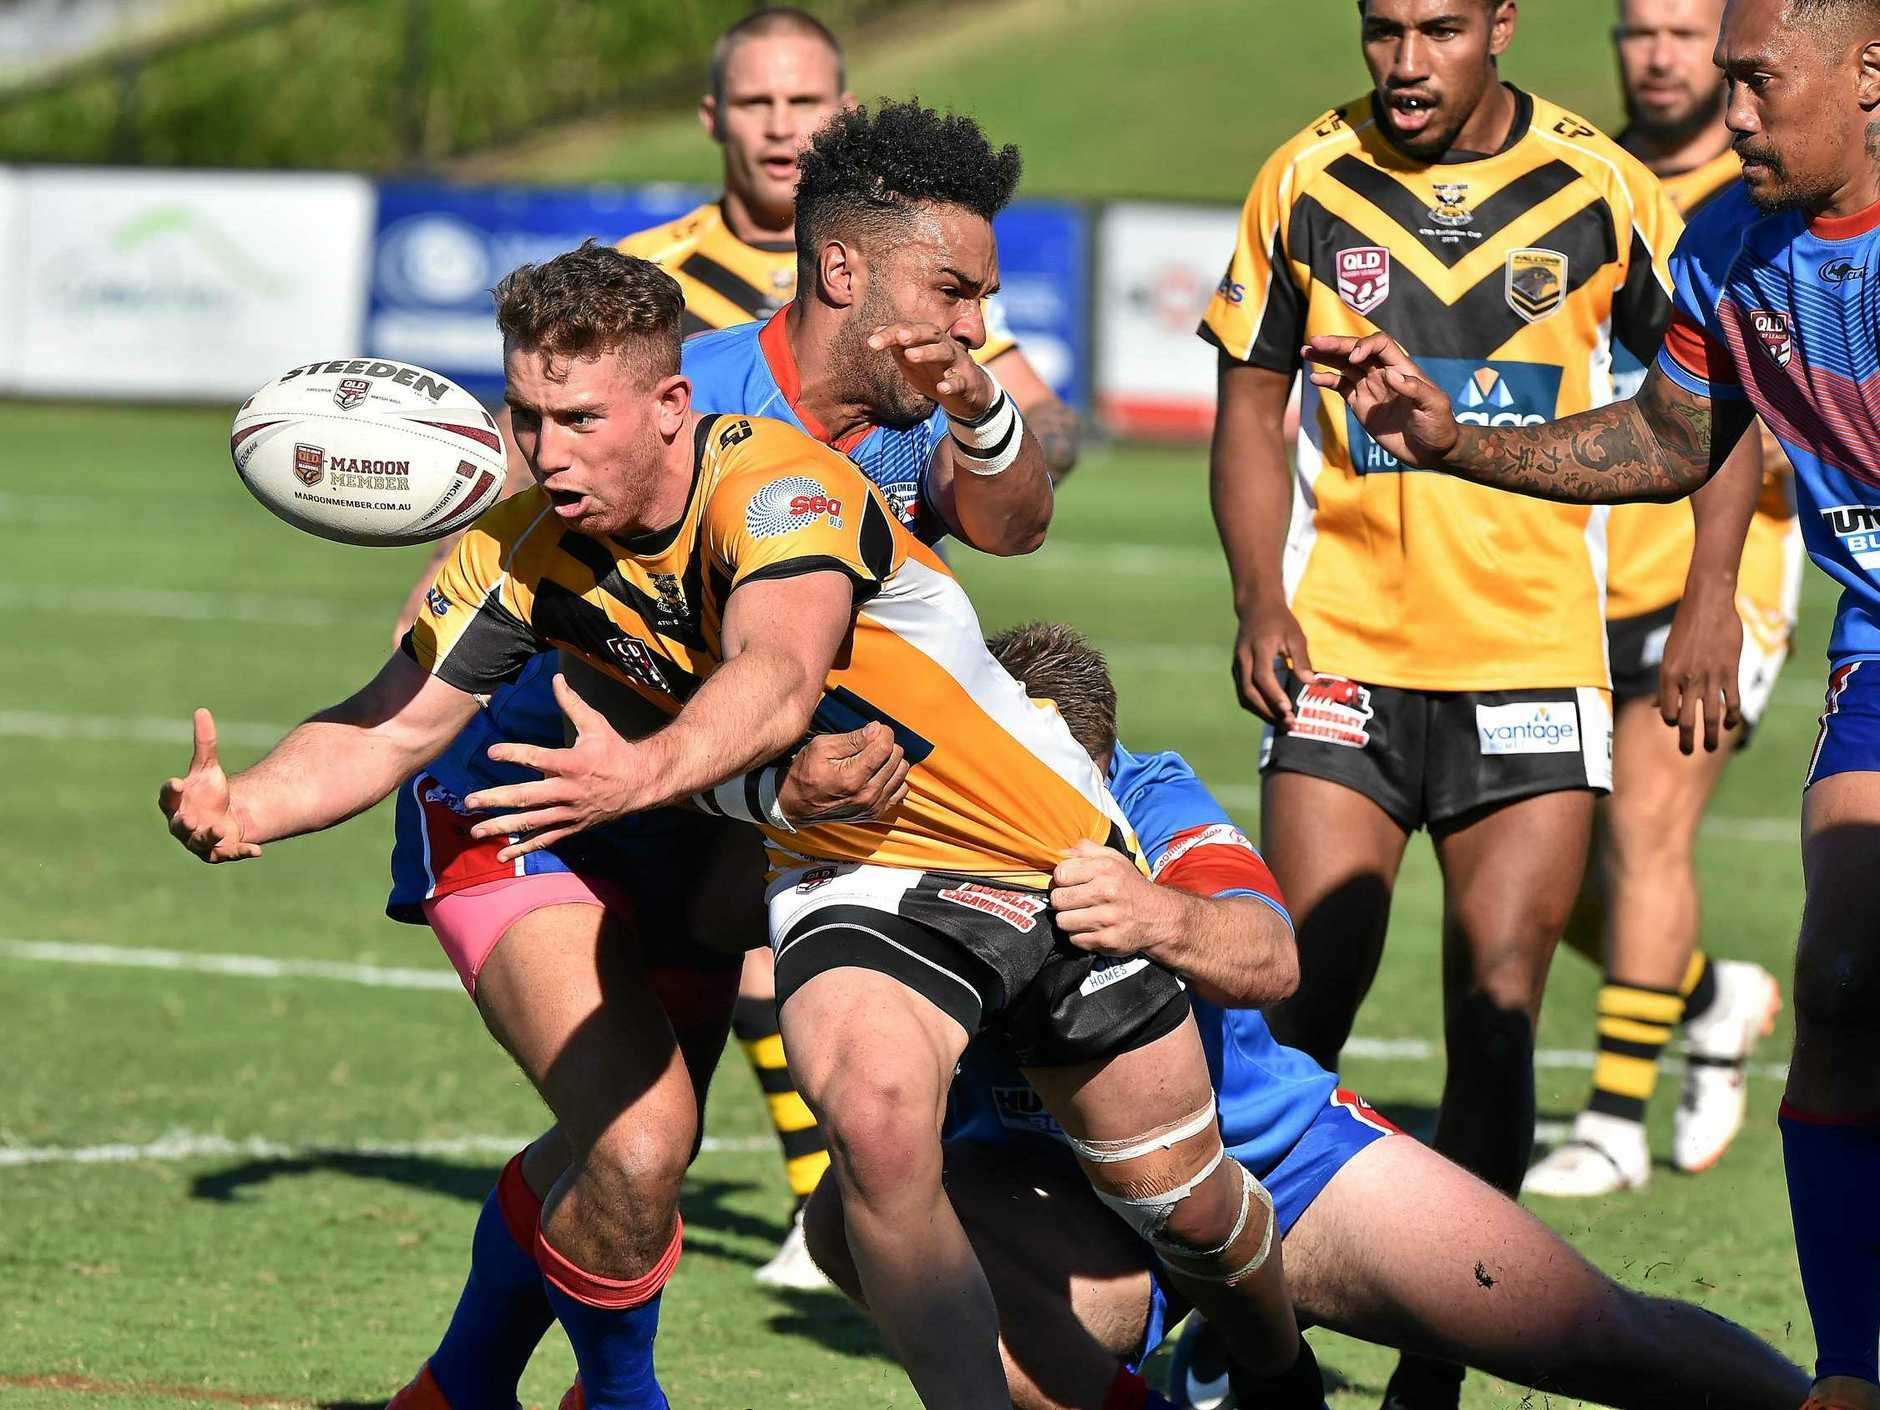 OFFLOADING: Caleb Daunt in action earlier this year during the 47th Battalion Carnival.